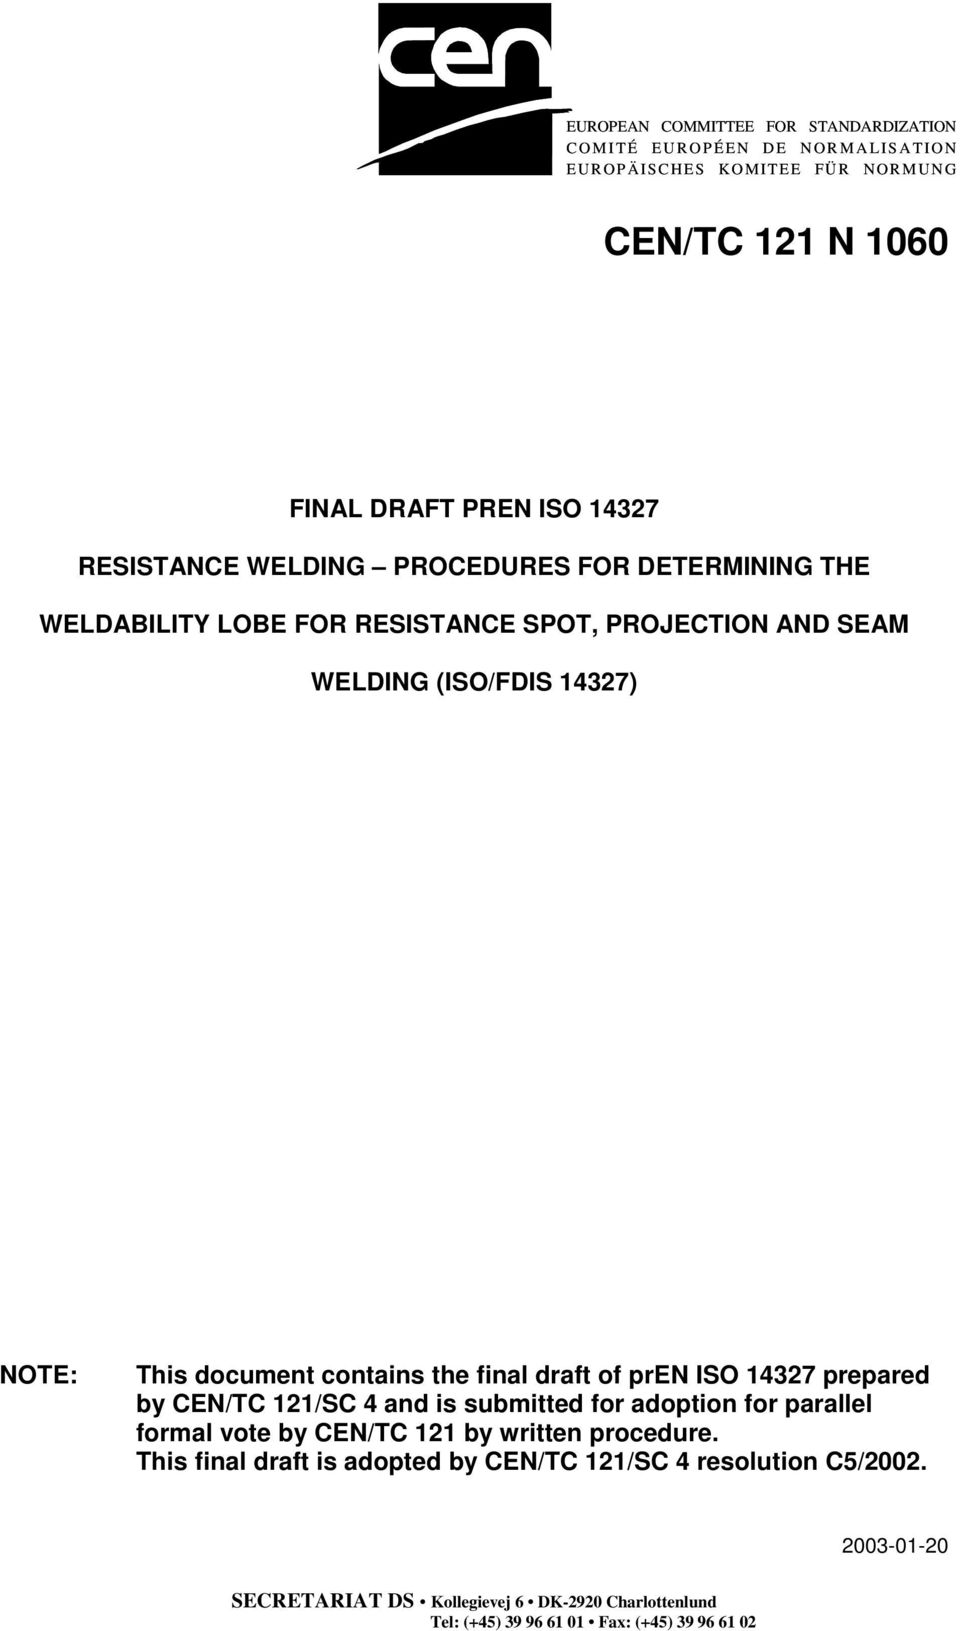 Final Draft Pren Iso Resistance Welding Procedures For Determining Lobe Diagram Contains The Of 14327 Prepared By Cen Tc 121 Sc